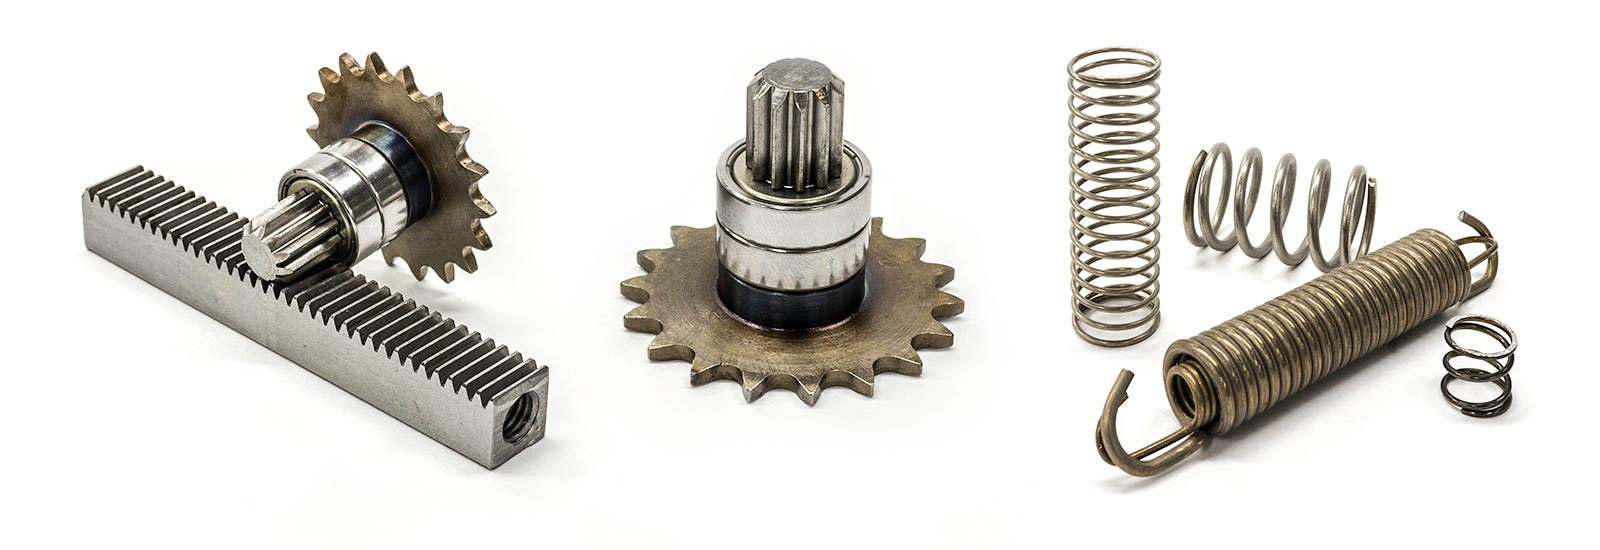 Multivac gears and sprockets